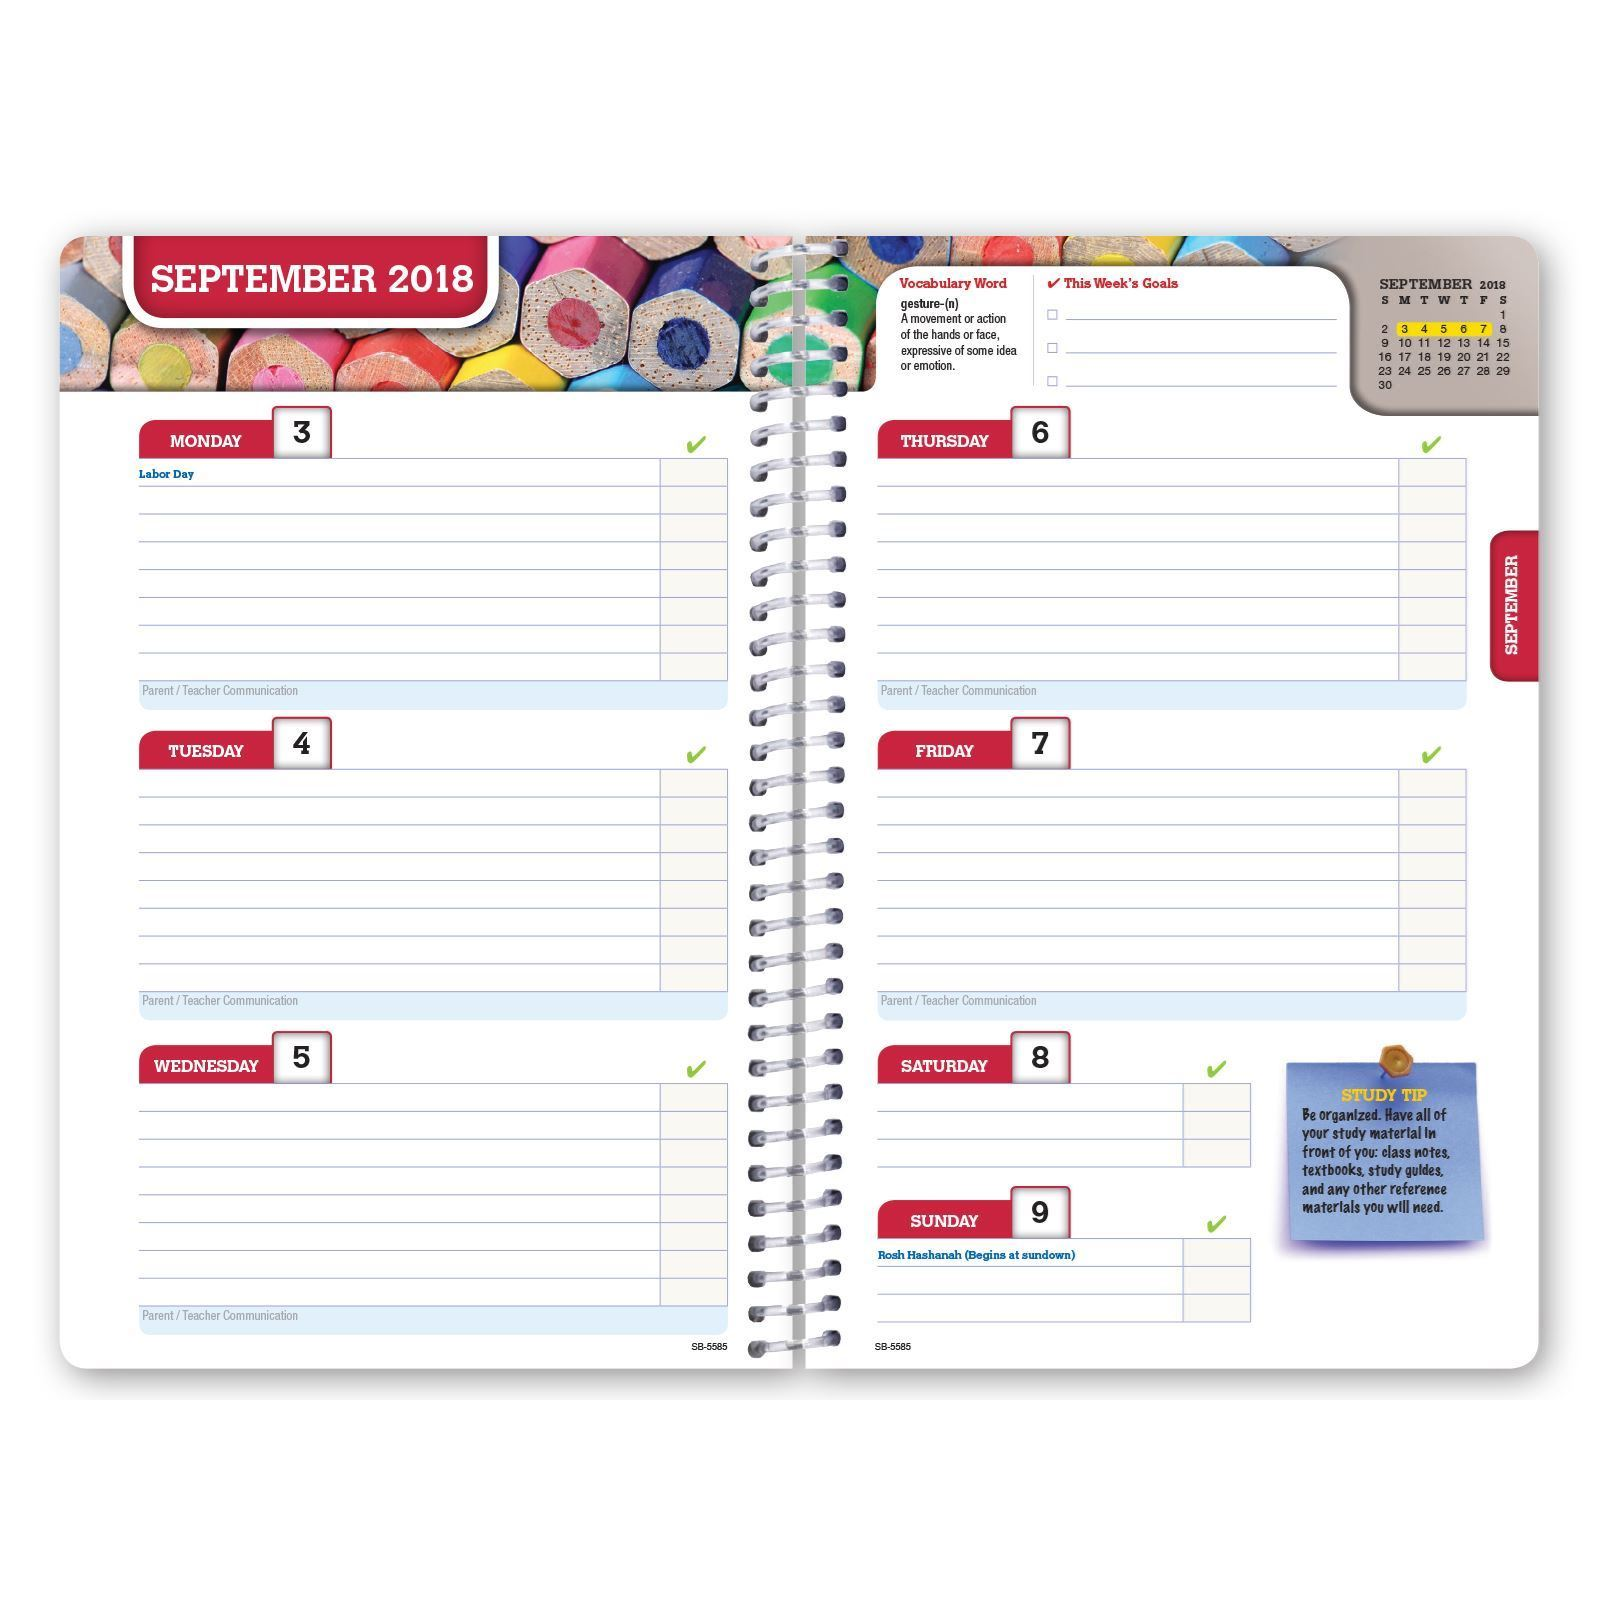 elan publishing  dated middle school or high school student planner for academic year 2018